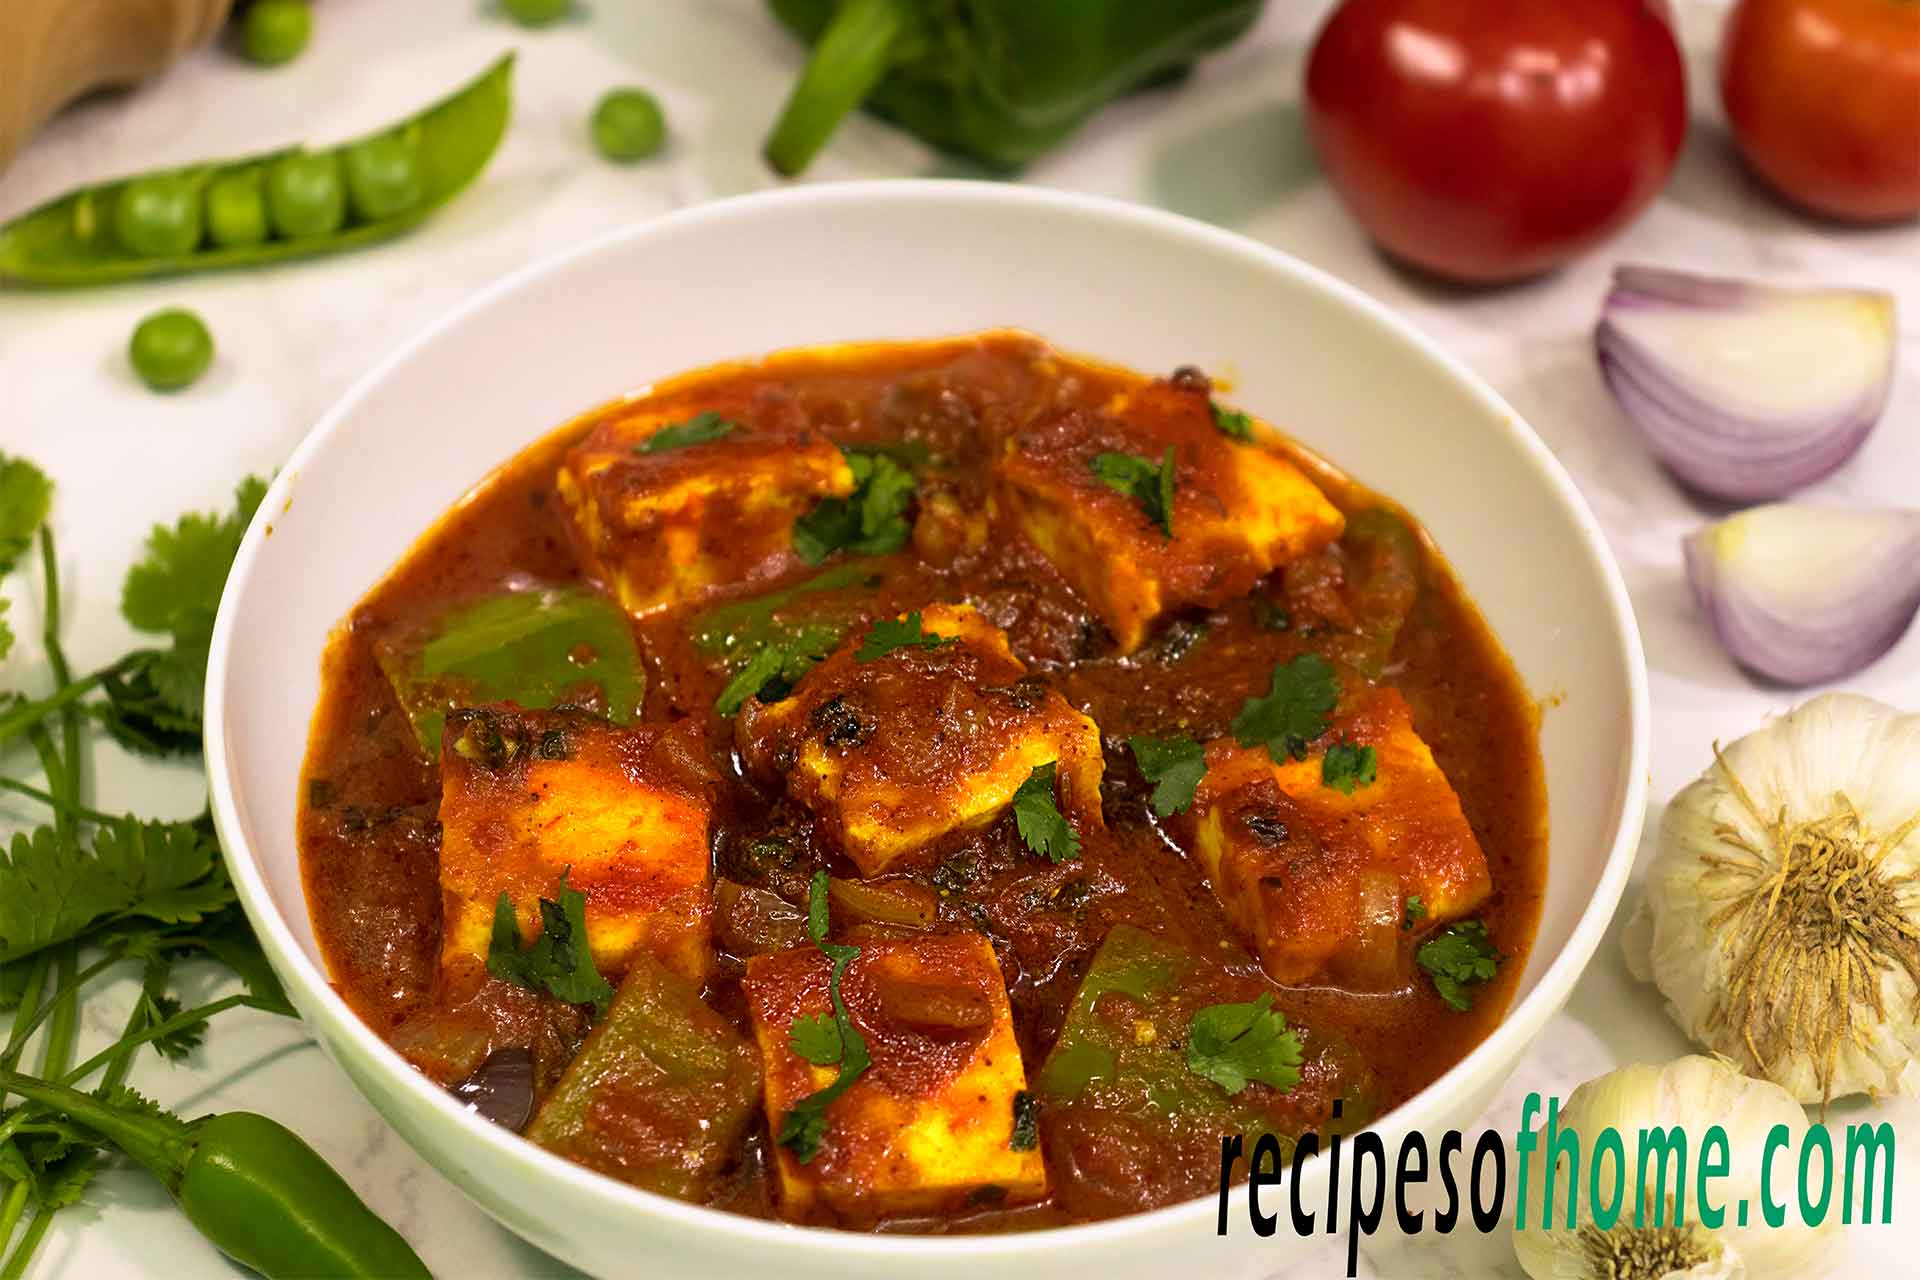 kadai paneer recipe serve in white bowl garnish with fresh coriander leaves